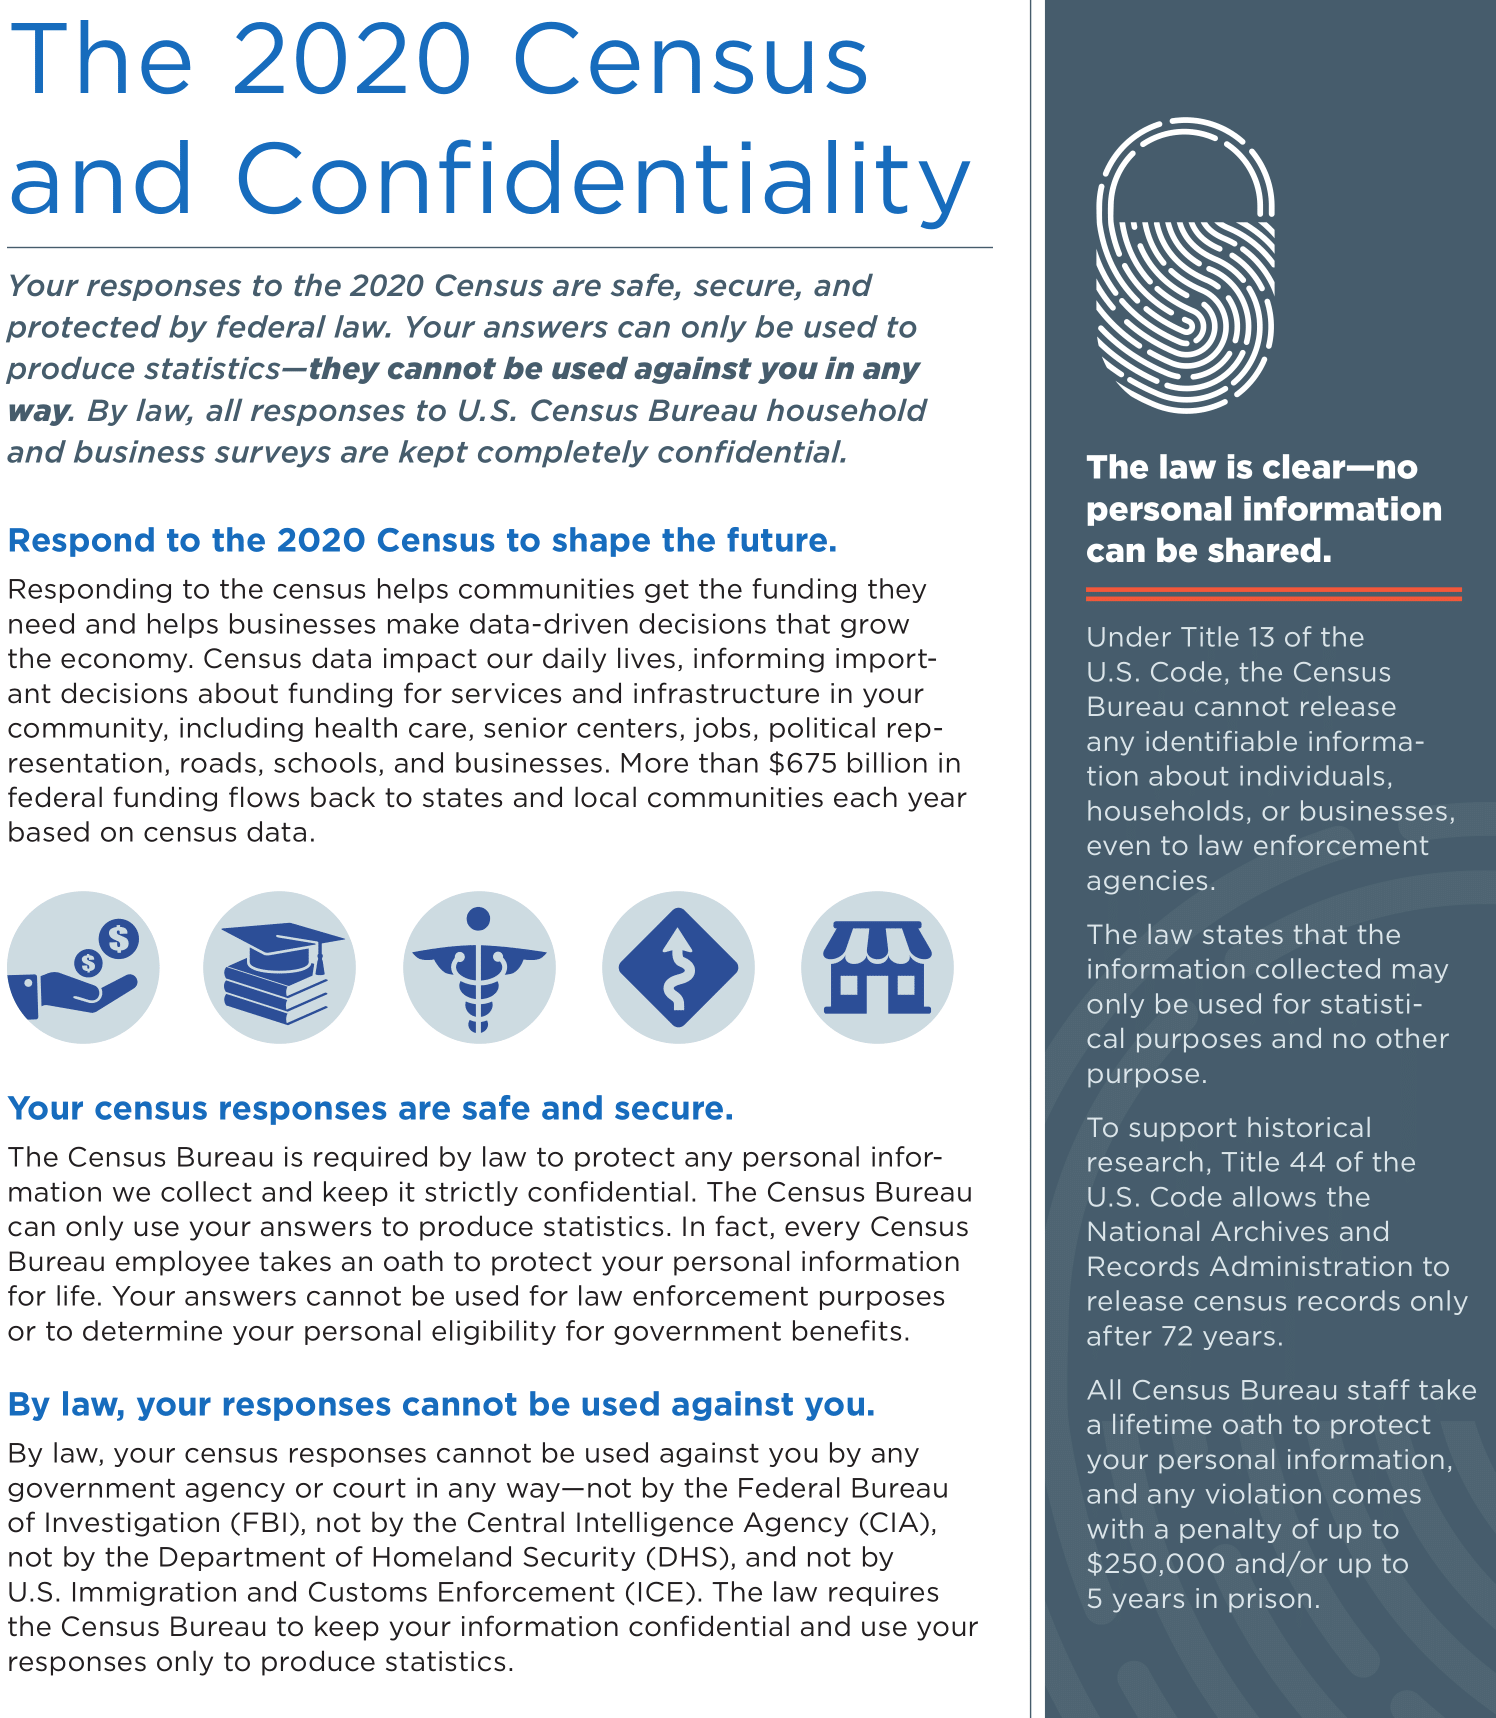 2020-confidentiality-factsheet-1cropped.png